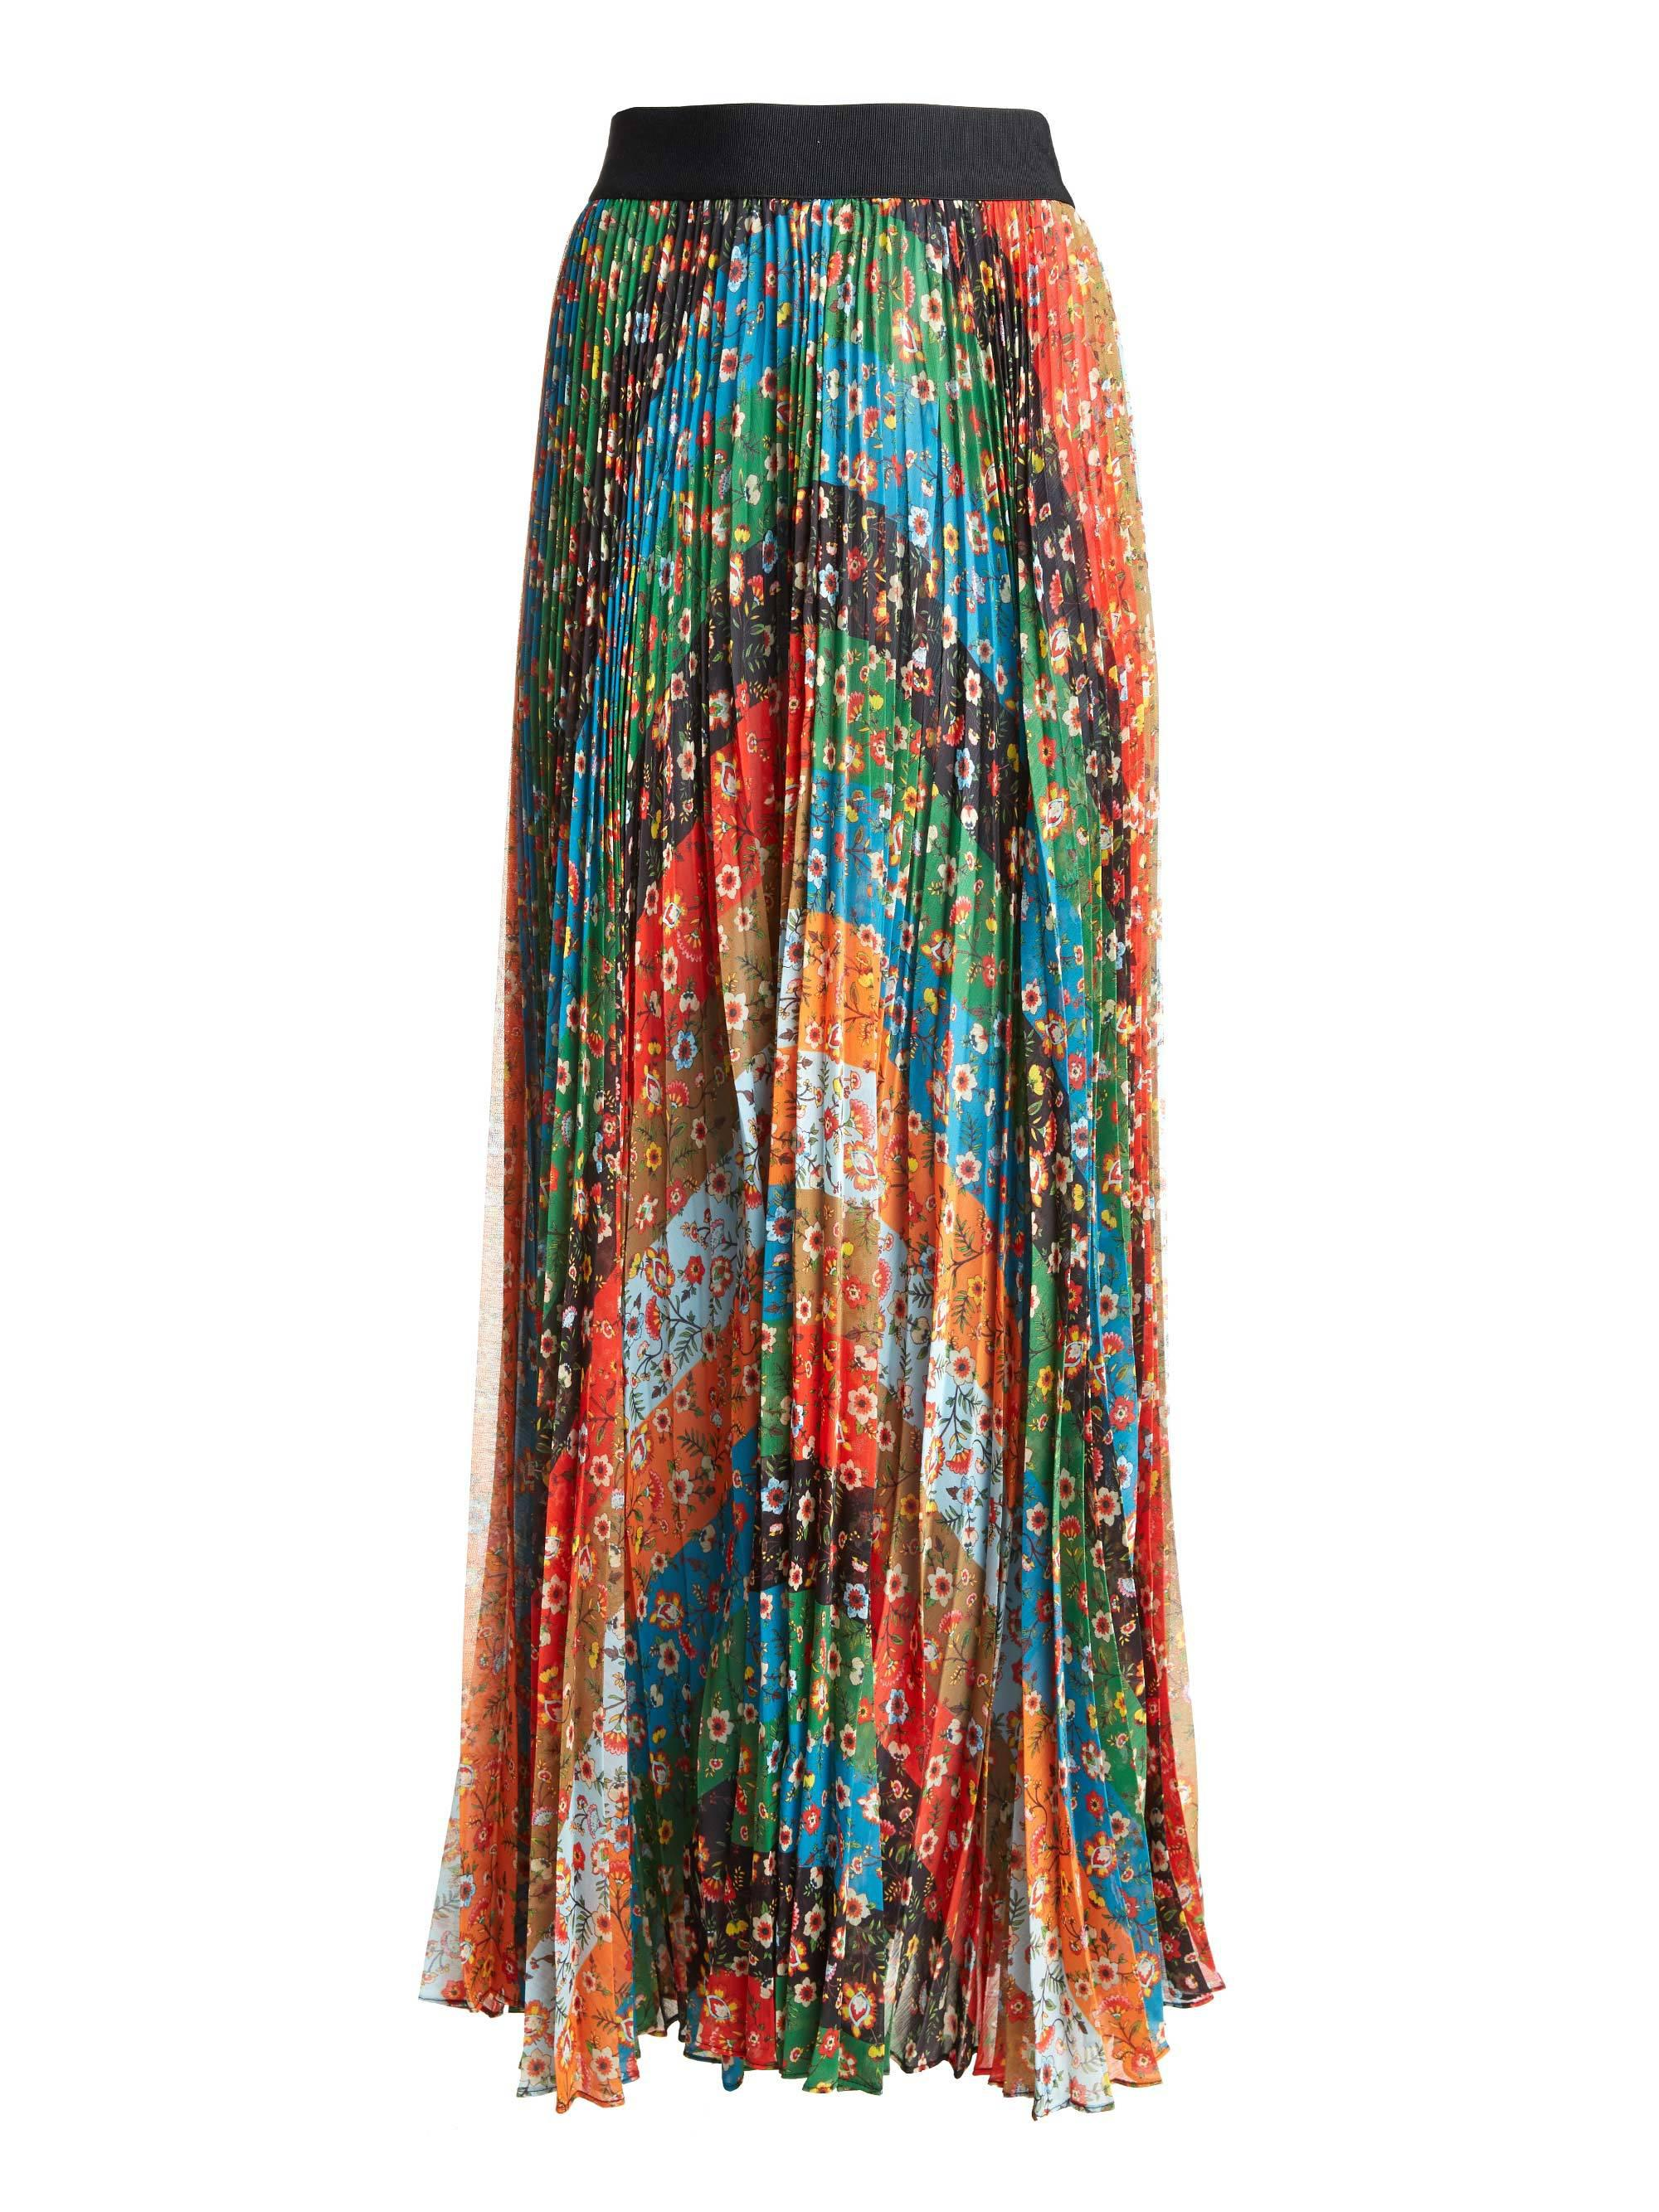 be472a58d0 Alice + Olivia Katz Wide Band Sunburst Pleat Maxi Skirt - Lyst